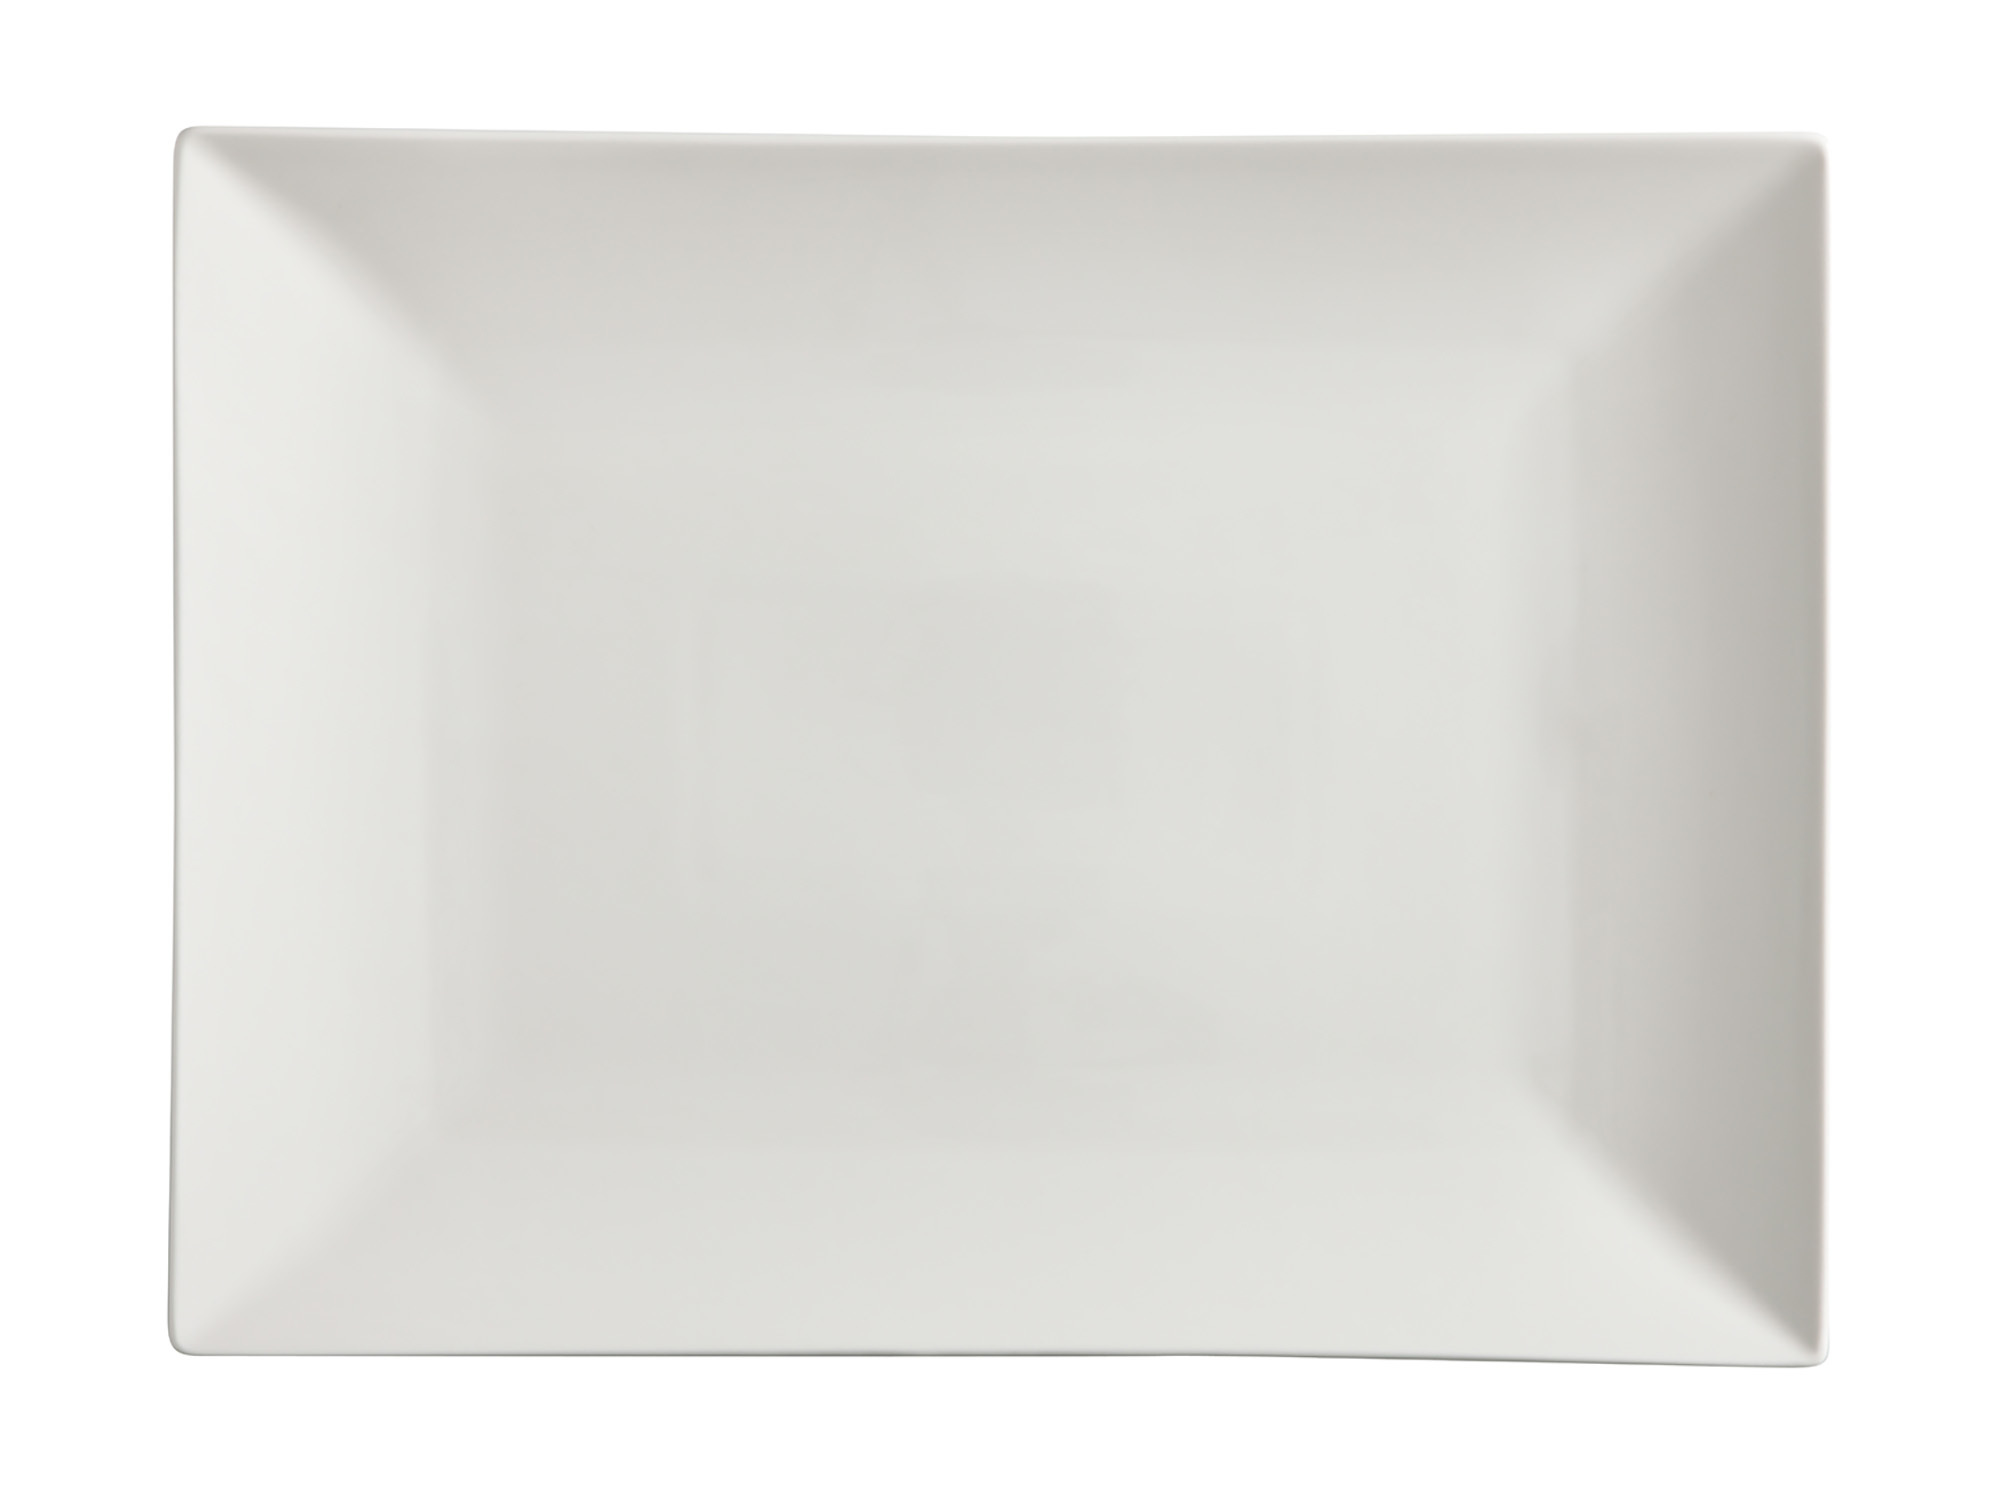 Maxwell & Williams White Basics Linear 36X25Cm Rectangle Platter Gift Boxed